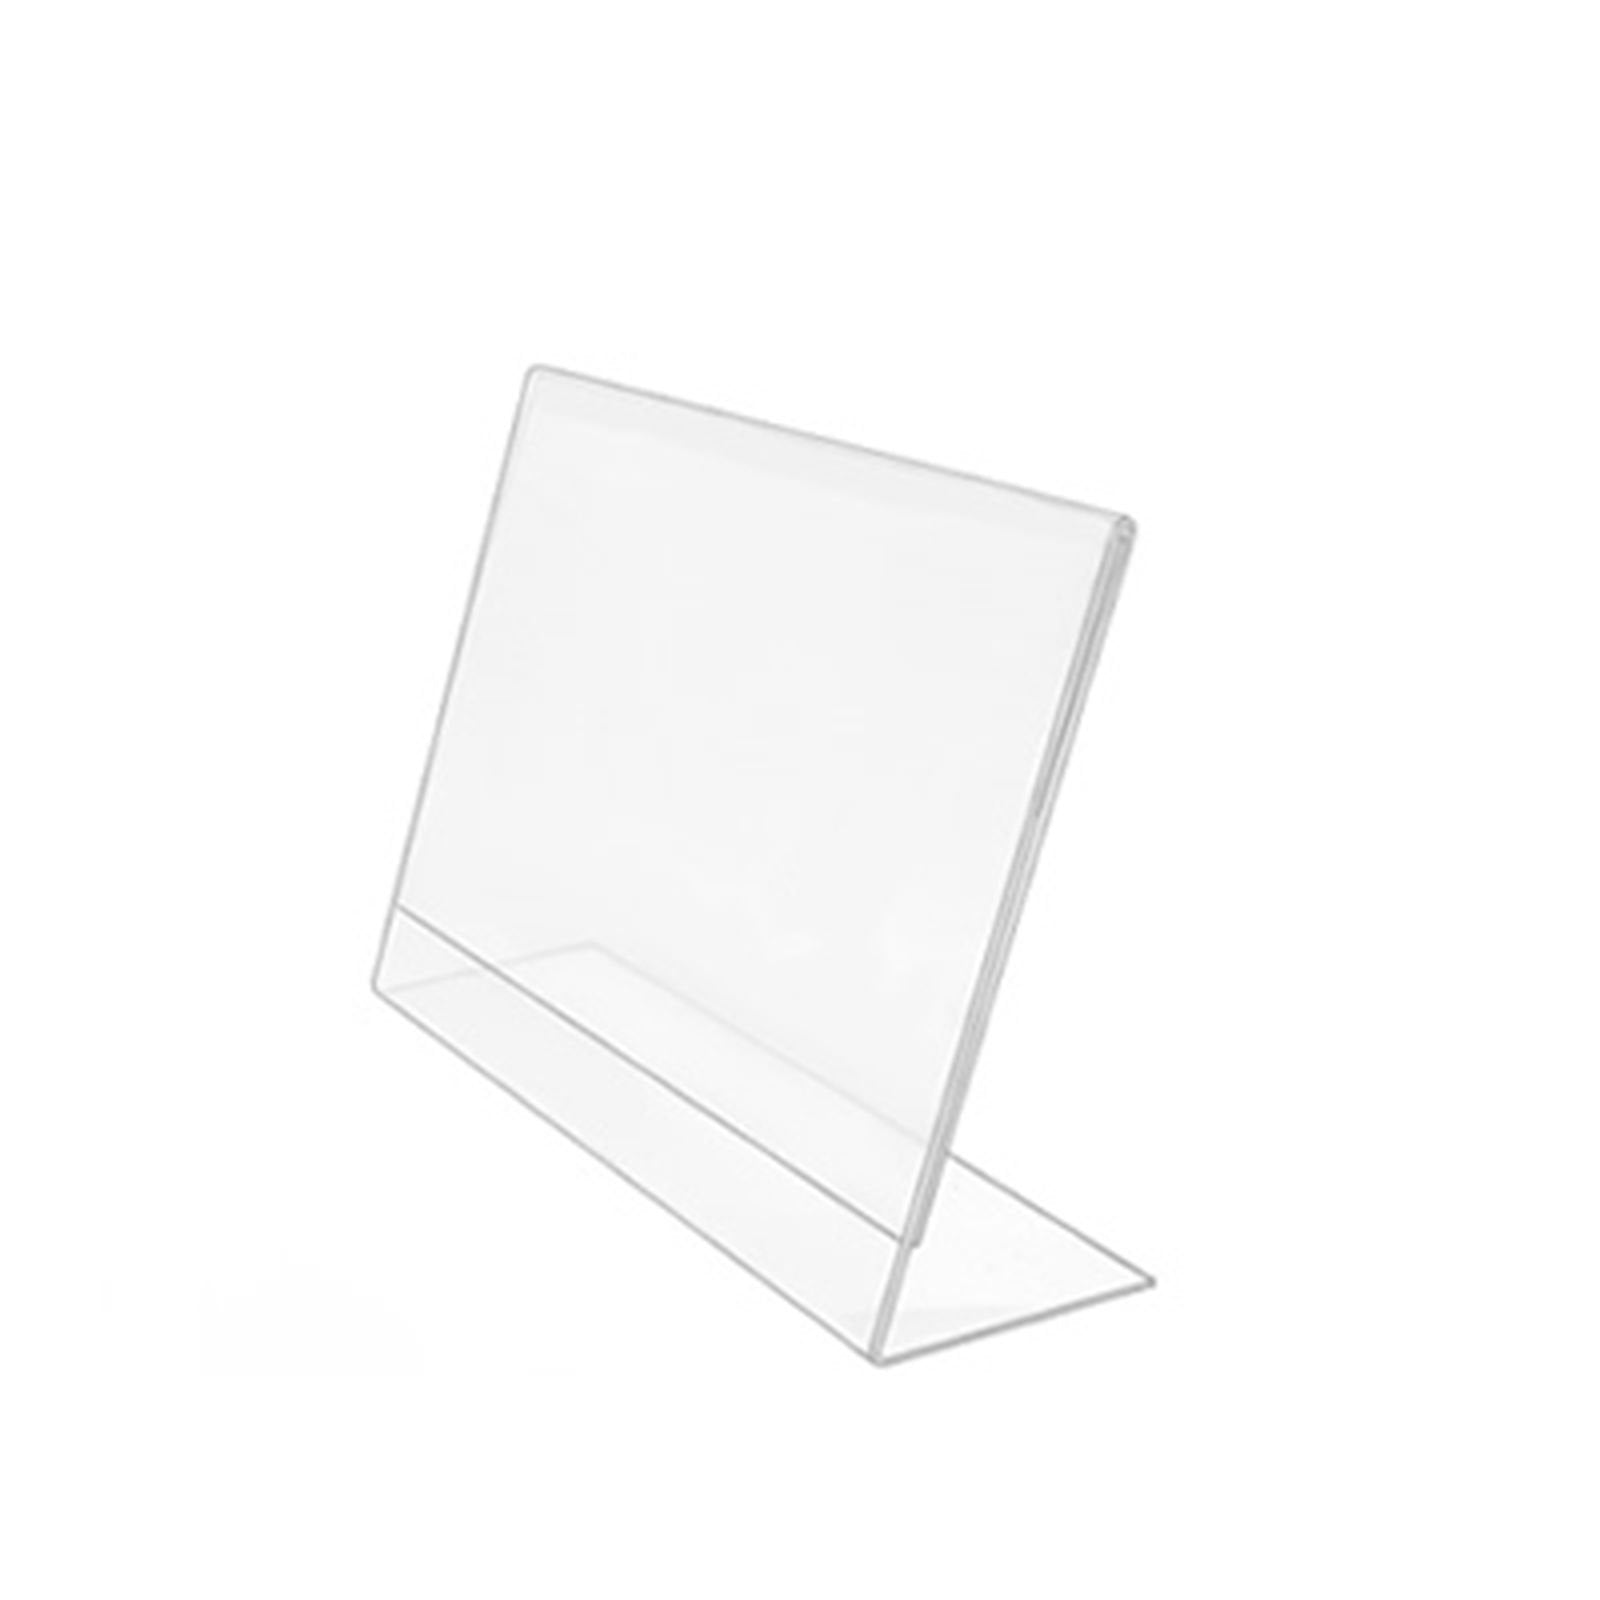 Poster Holder A4 Acrylic POS Leanback Display Landscape pack of 5